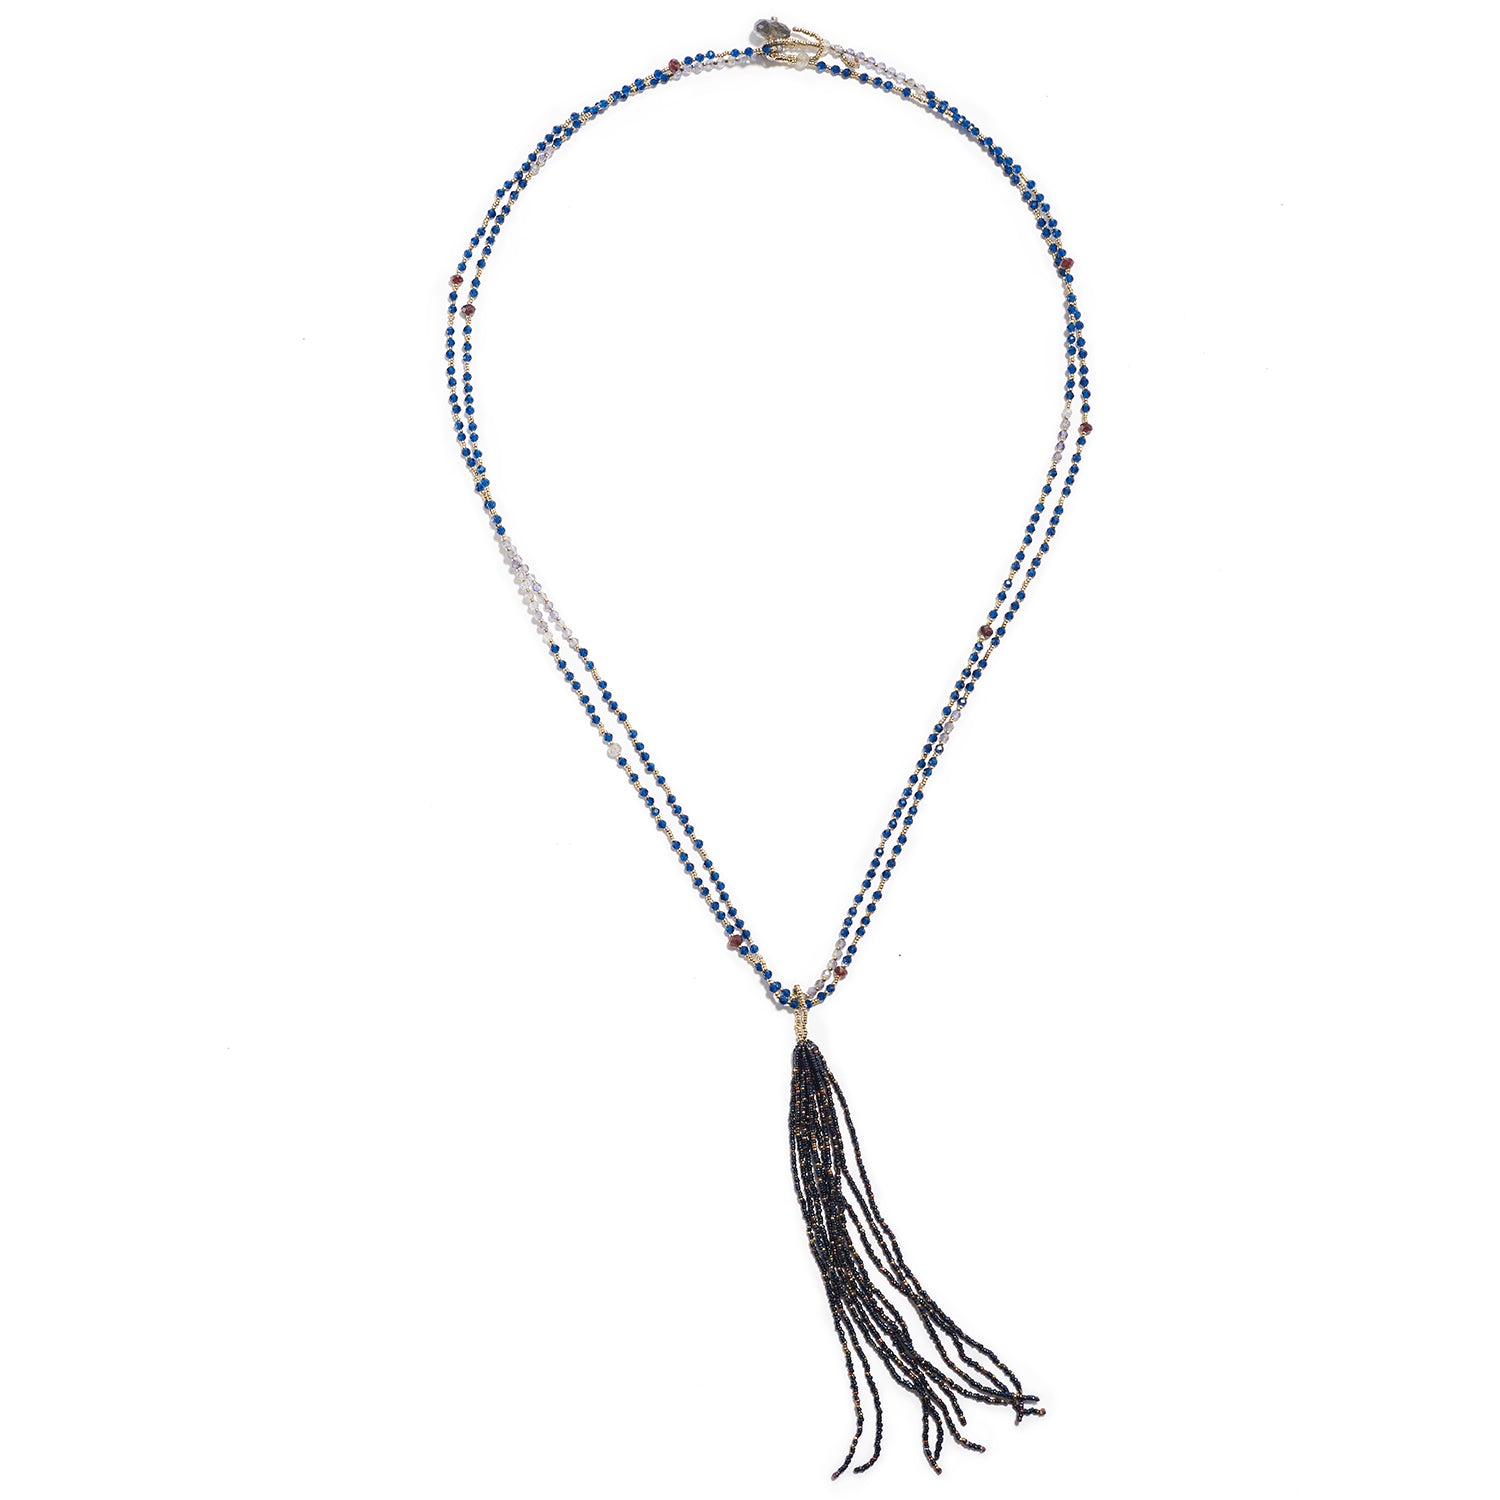 Tassel Necklace with Blue Quartz, Garnet & Labradorite